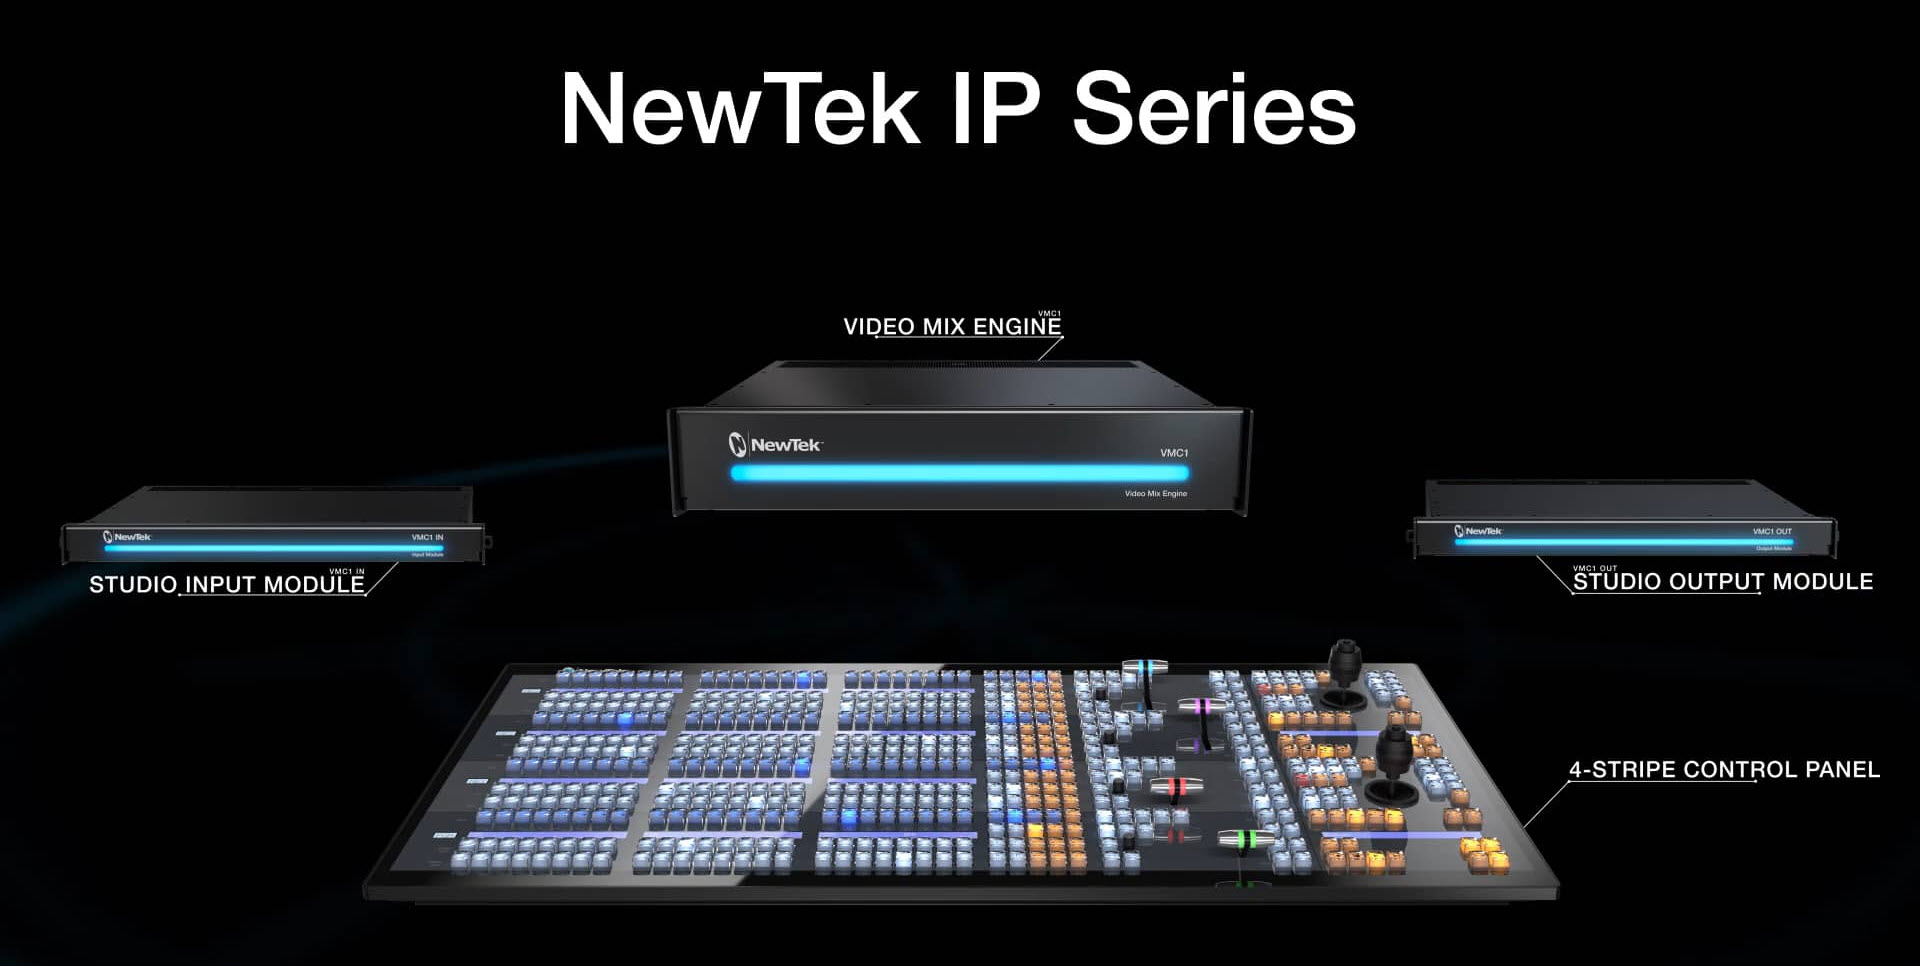 NewTek IP Series, Video Mix Engine, Studio Input Module, Studio Output Module, 4-Stripe Control Panel